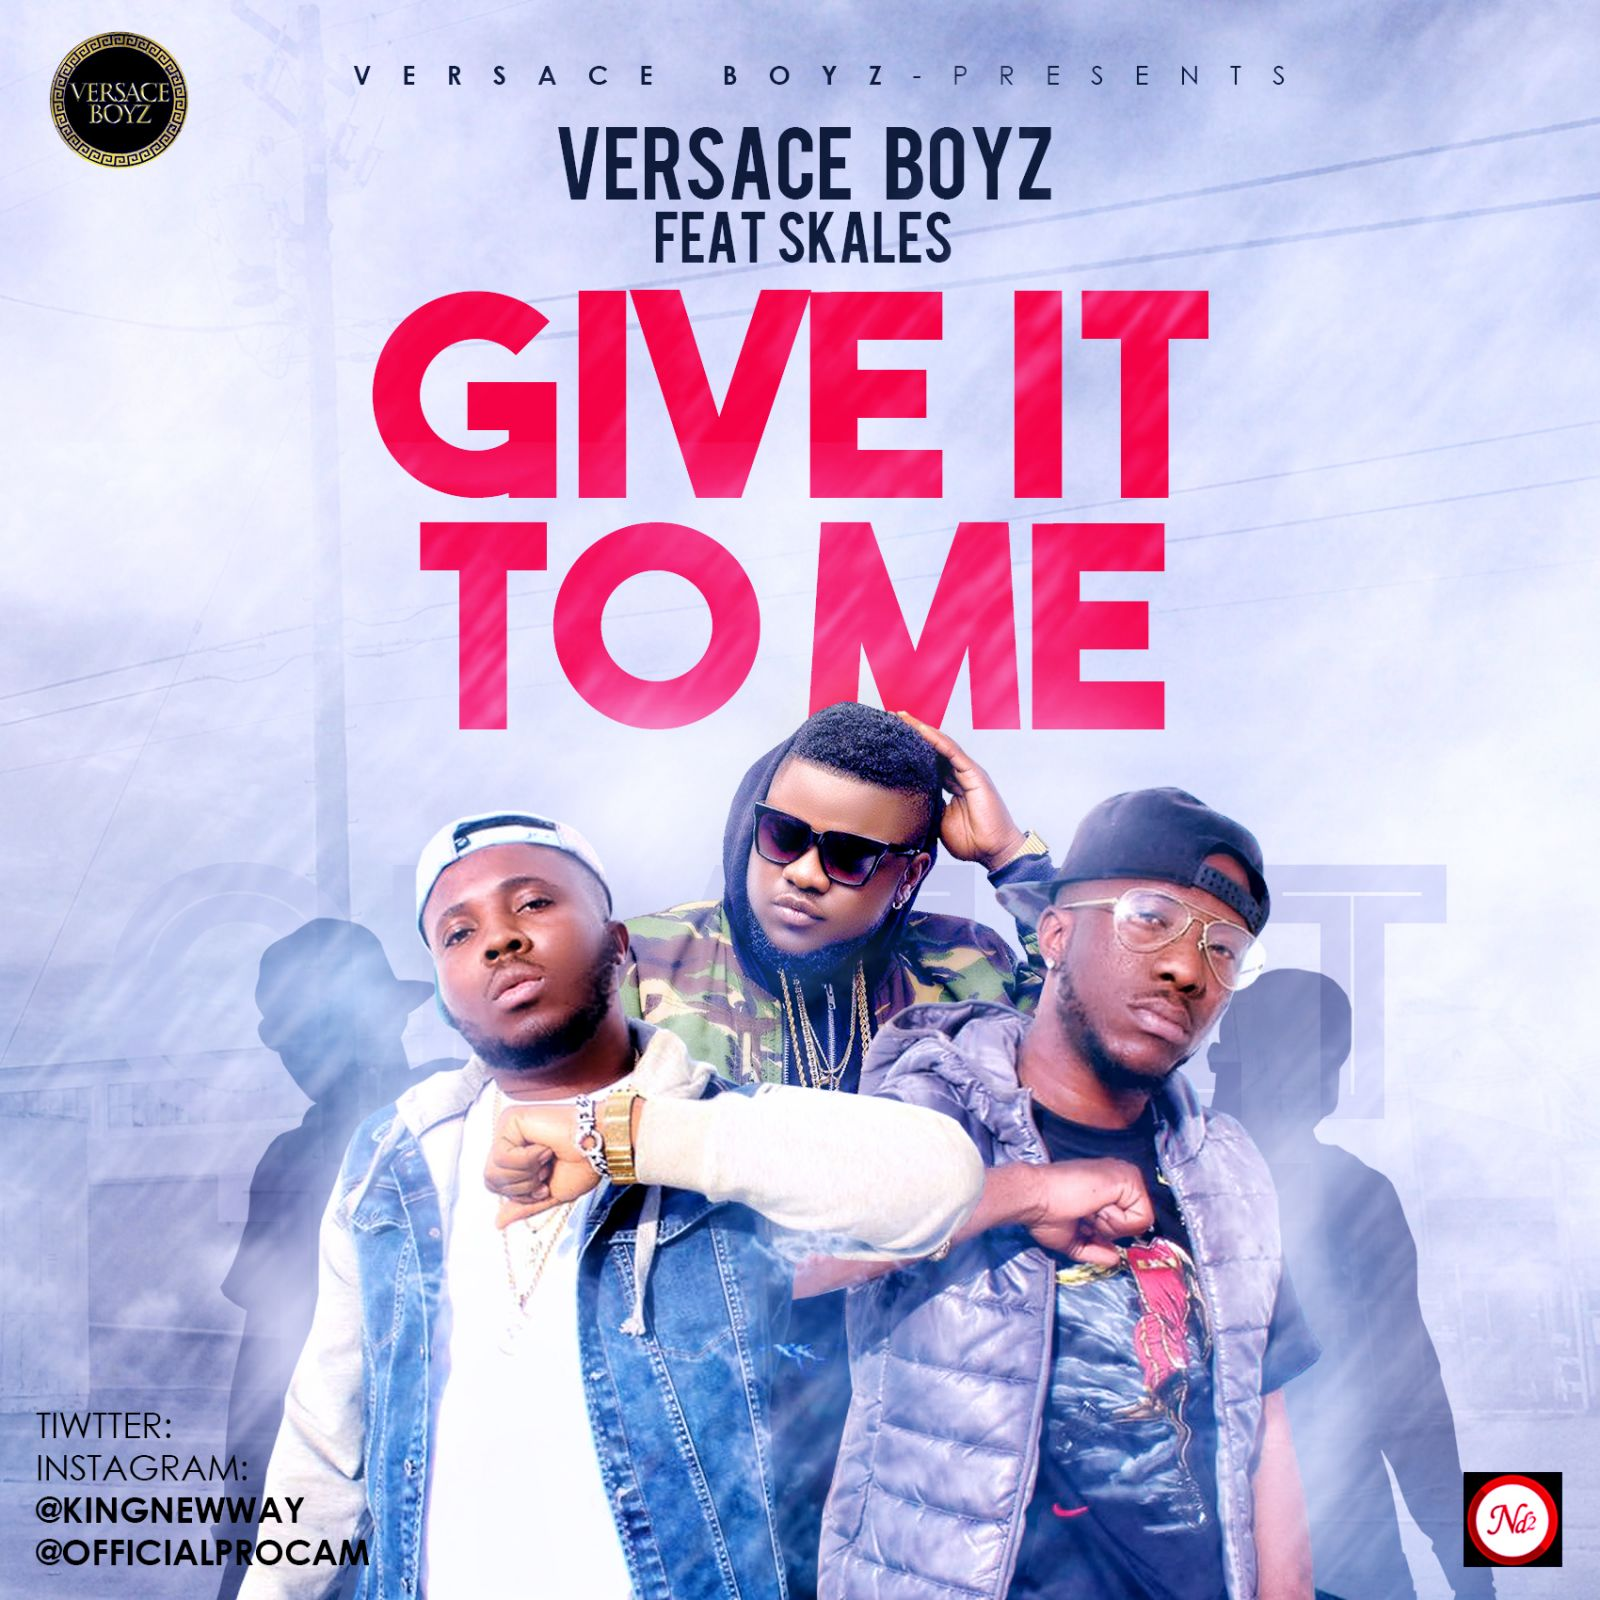 Versace Boyz ft. Skales - Give It To Me (Prod. KillerTunes)